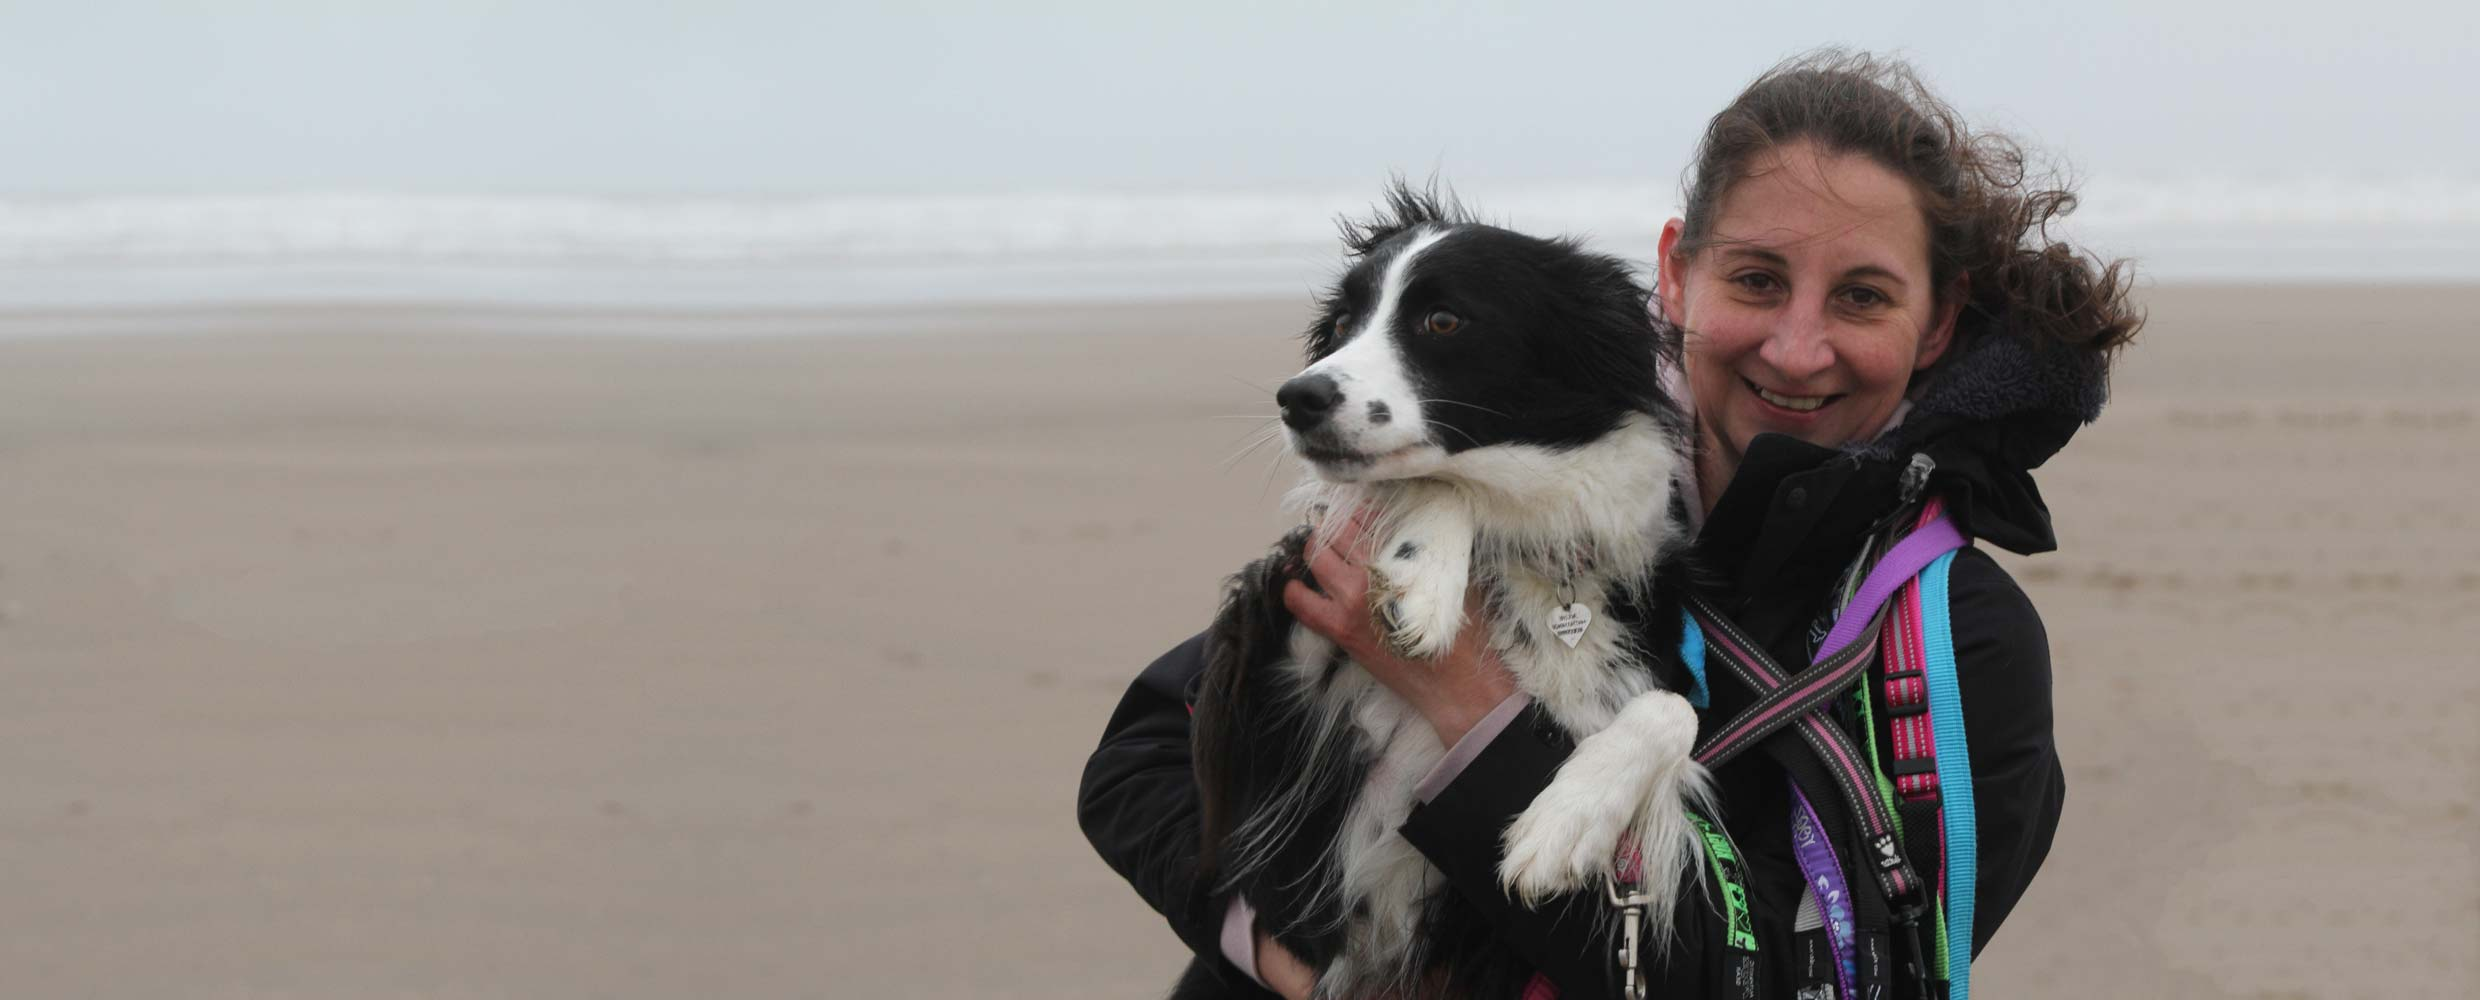 Alison Roets of Freyasway holding Muse the Border Collie on the beach